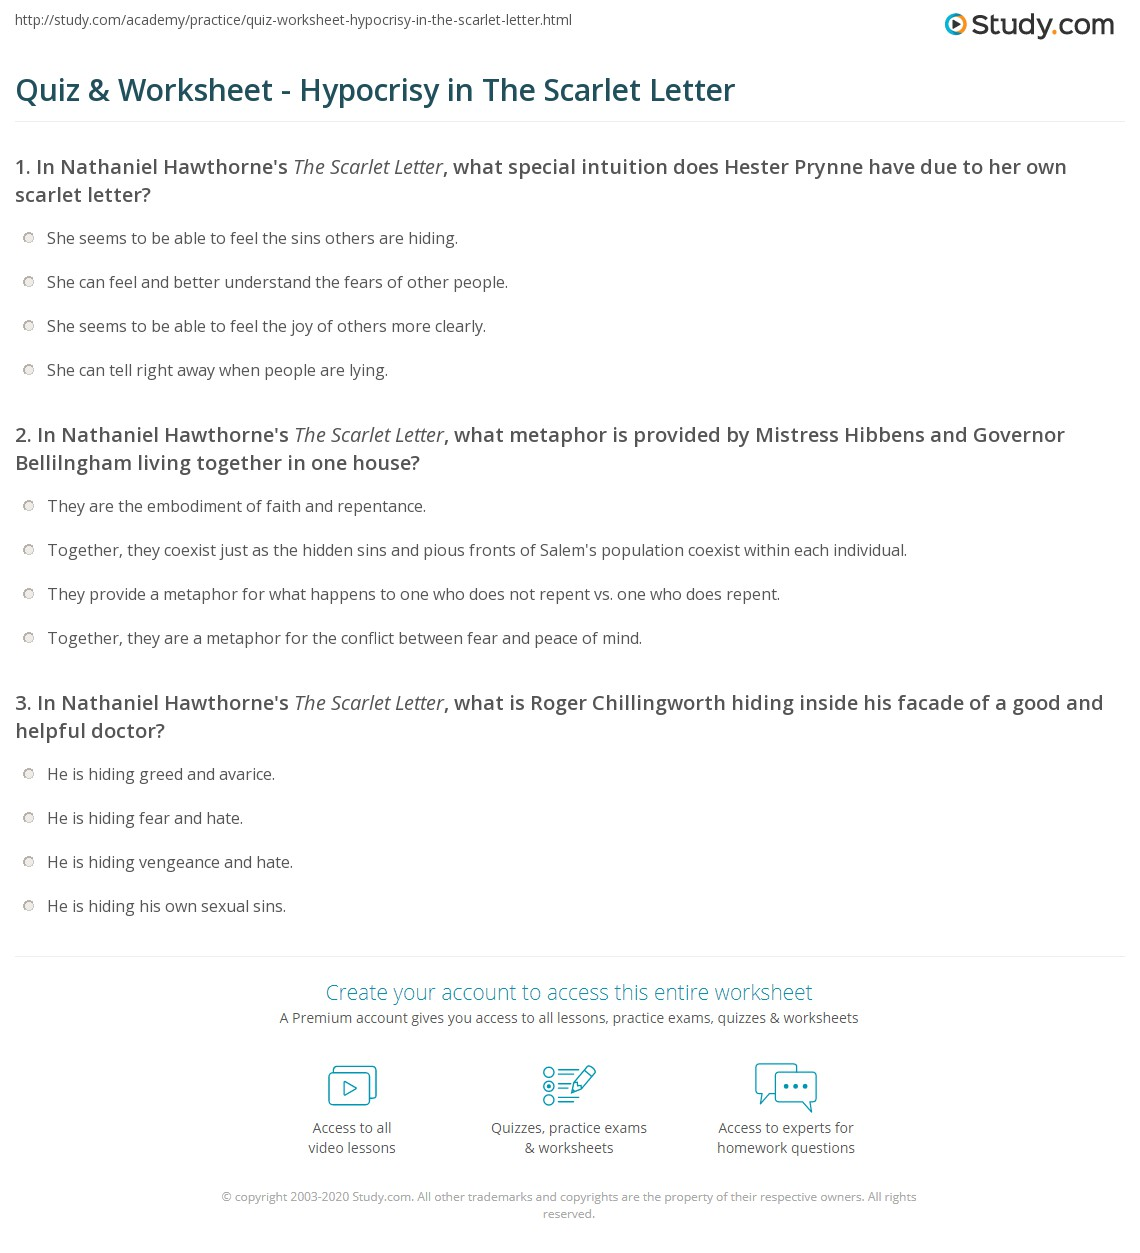 quiz worksheet hypocrisy in the scarlet letter com print hypocrisy in the scarlet letter worksheet